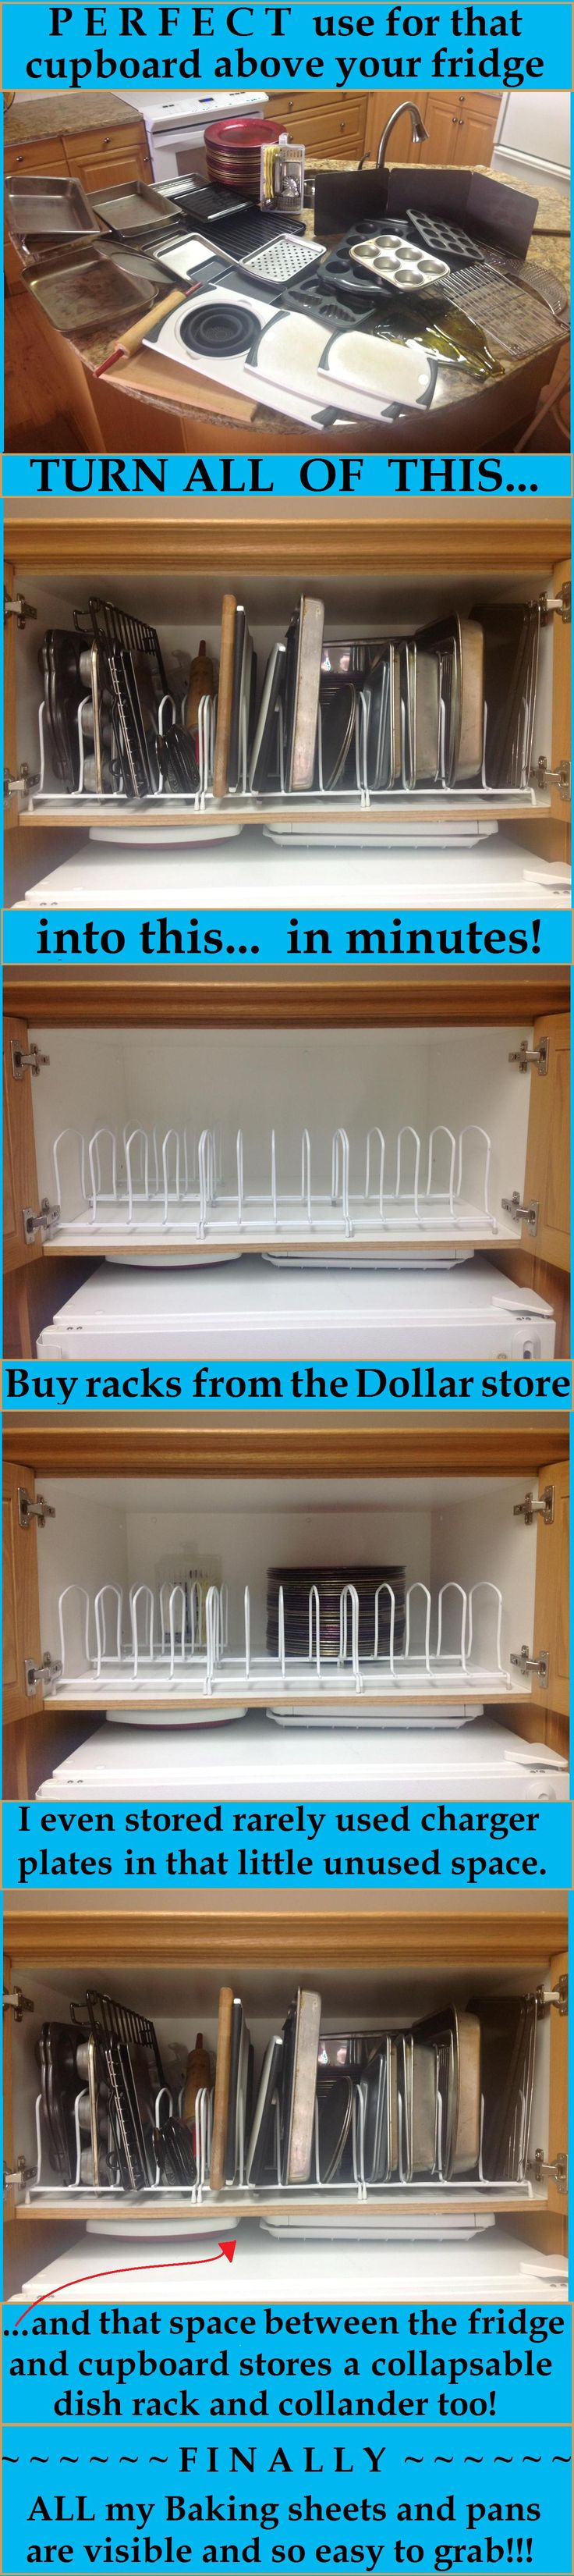 Captivating Dollar Store Dish Racks To Separate The Pans And Lids In A Cabinet Above  The Fridge · Kitchen OrganisationOrganized KitchenOrganization IdeasStorage  ...